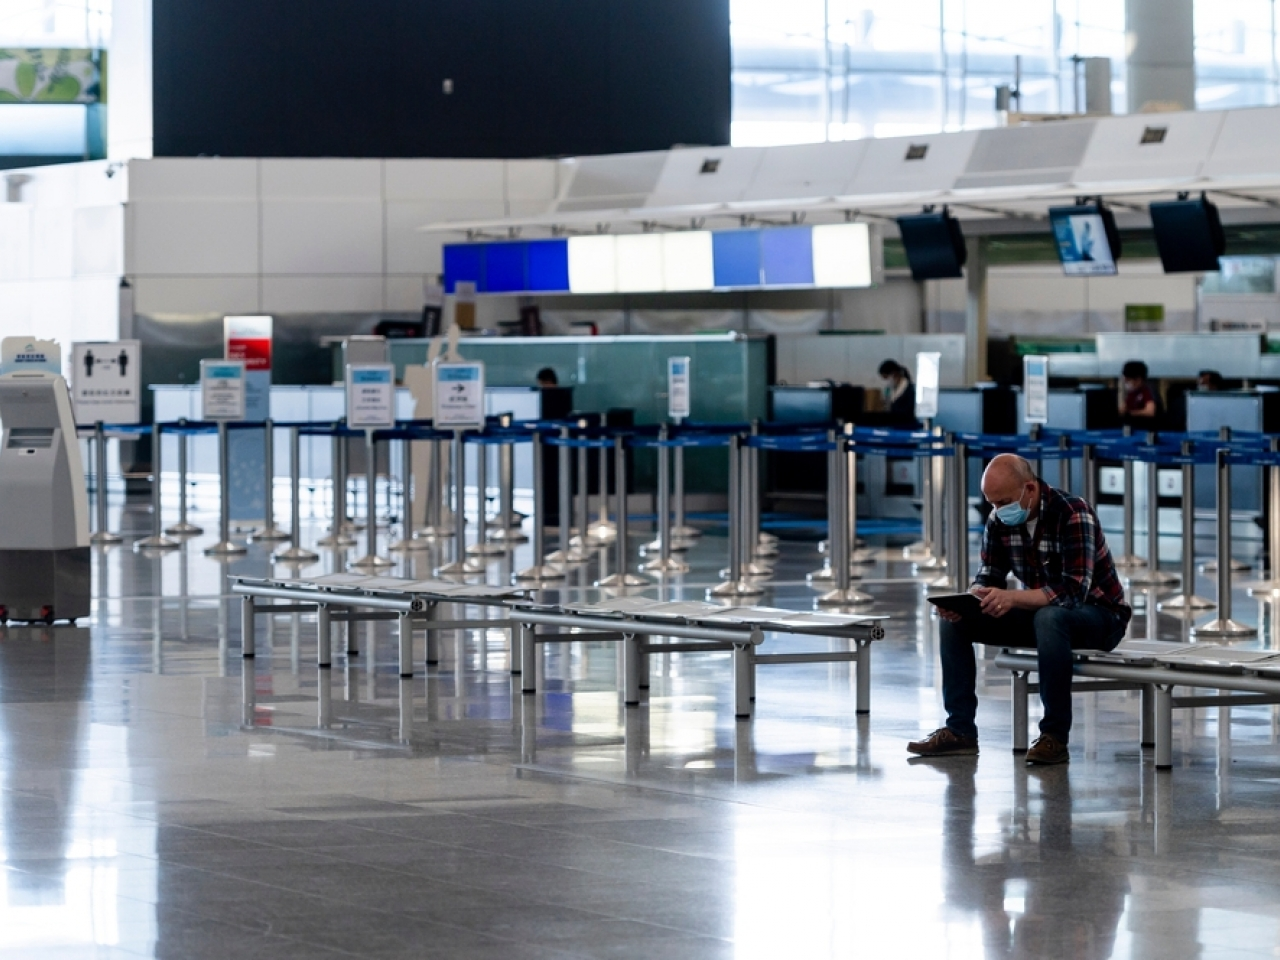 The Centre for Health Protection says people, including those fully inoculated, should continue to avoid non-essential travel. File image: Shutterstock